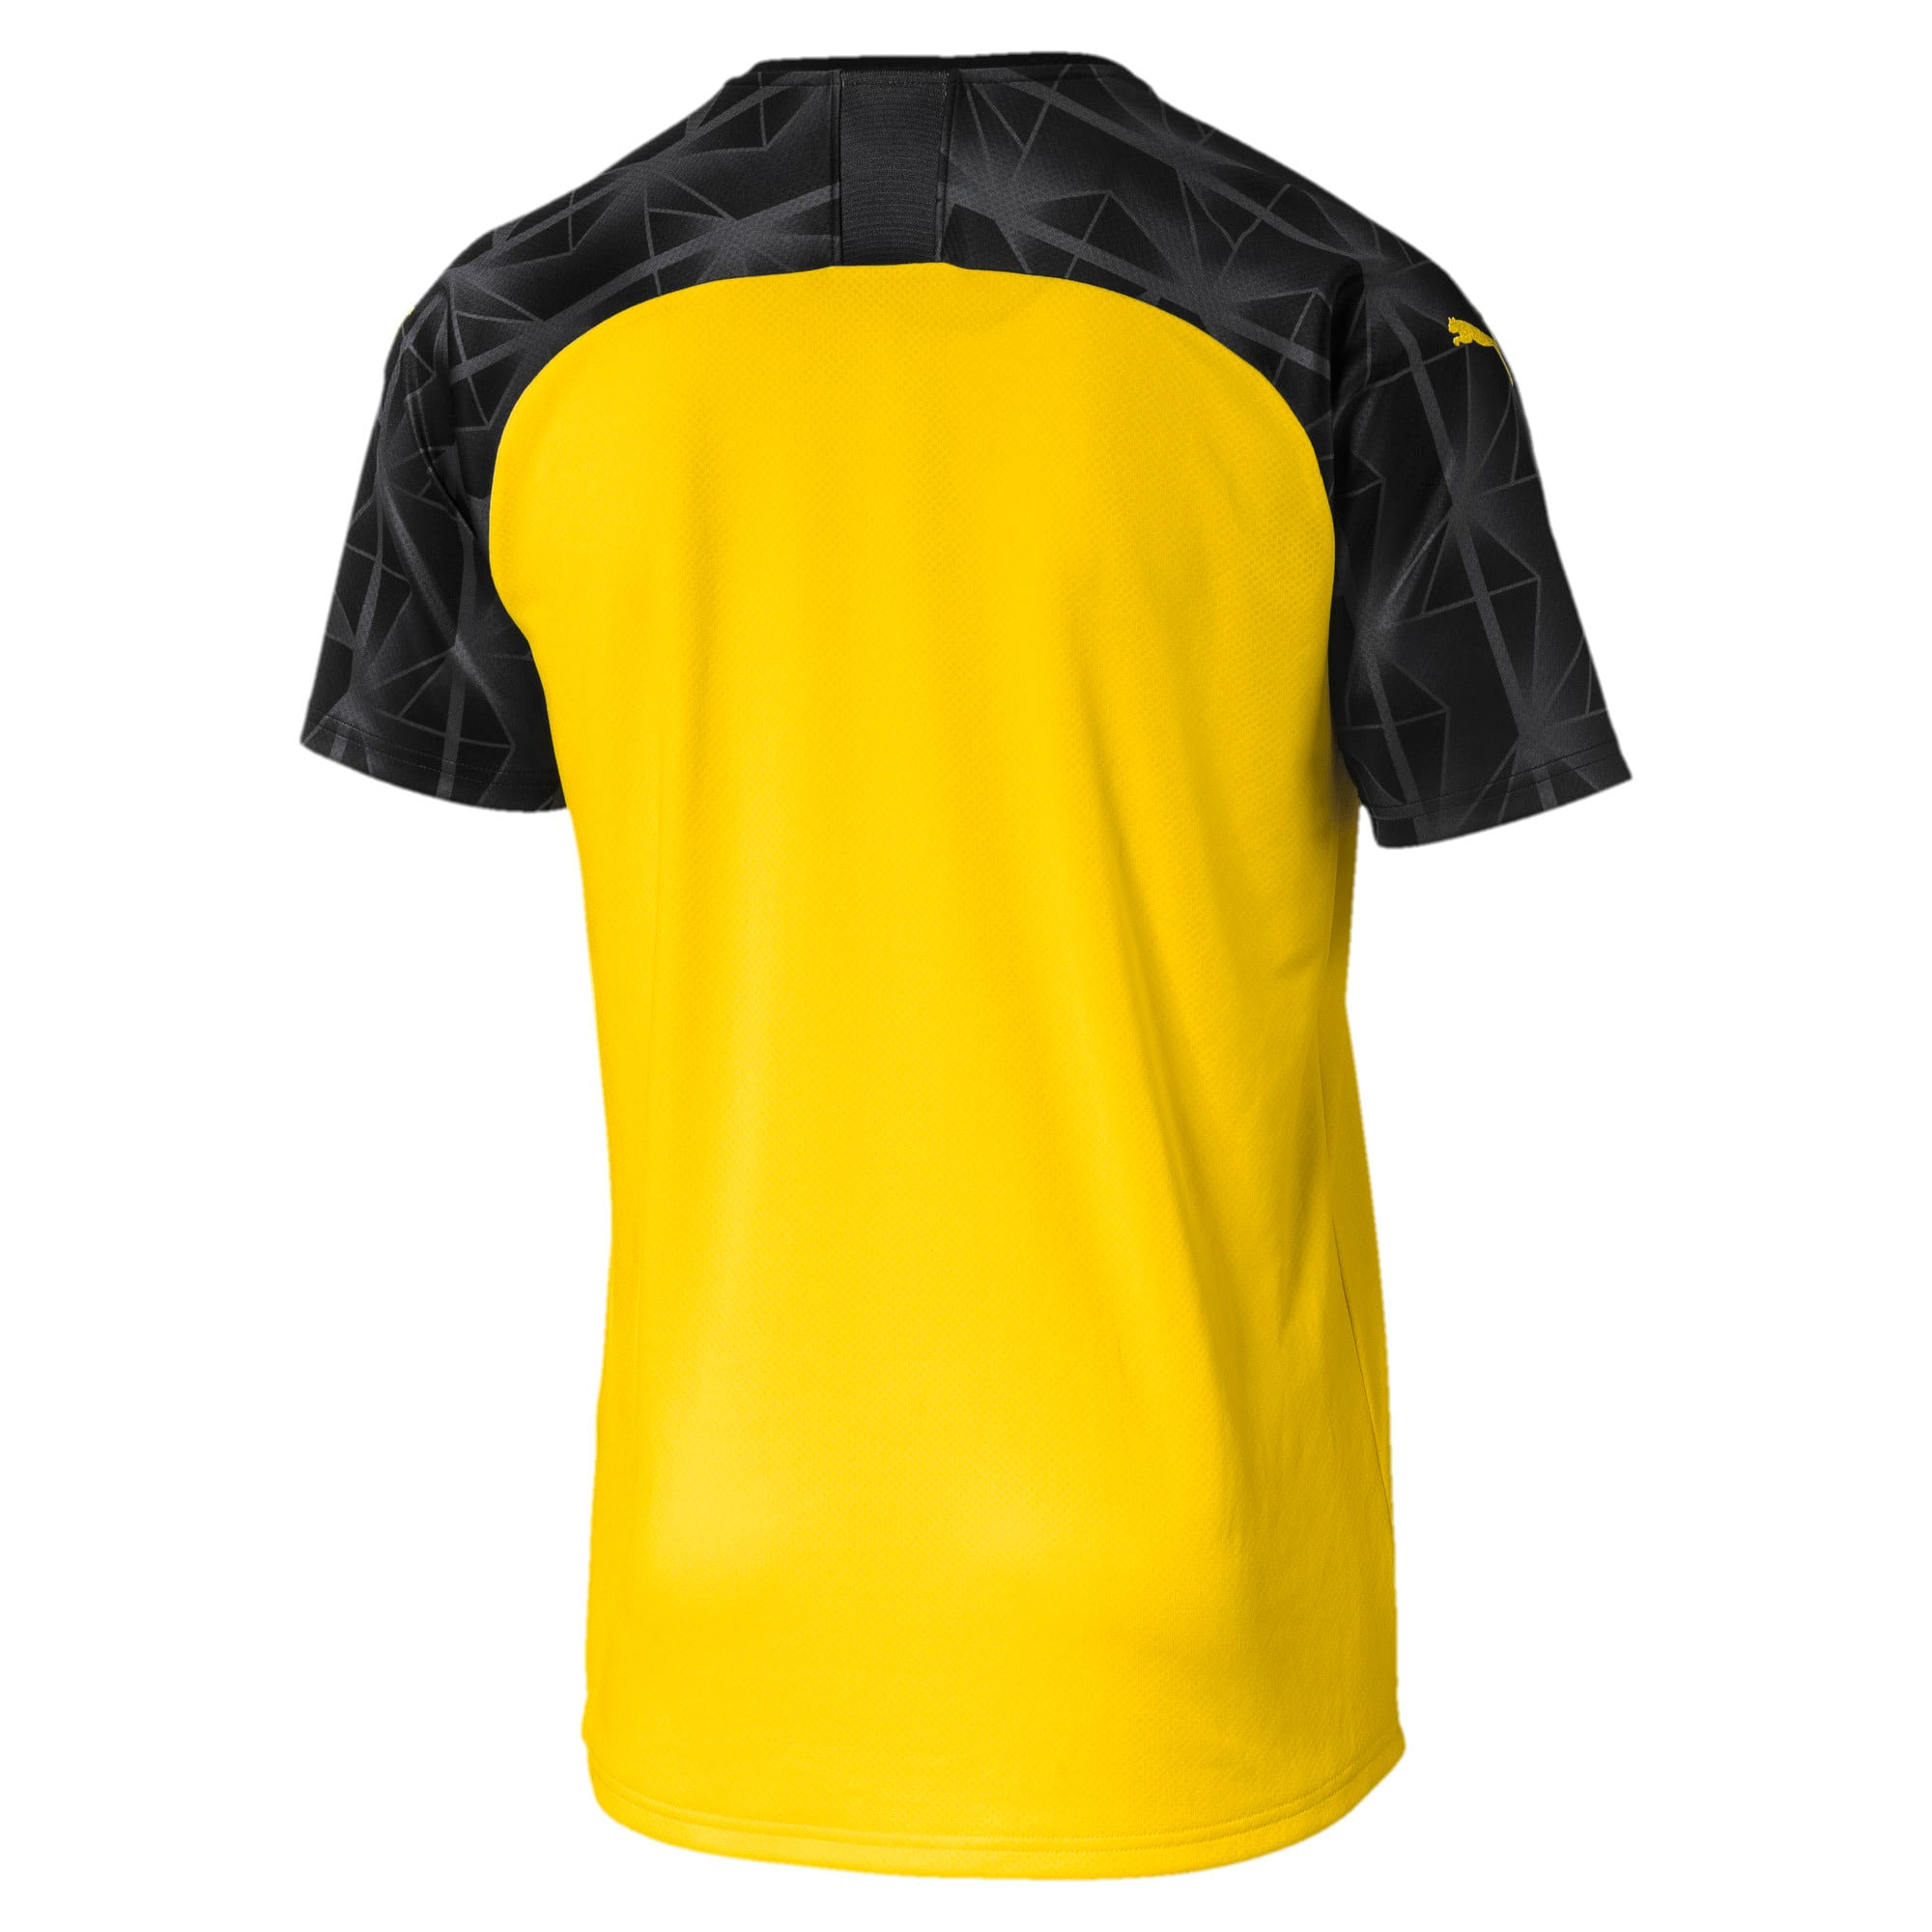 BVB Men's Replica Cup Jersey, Cyber Yellow-Puma Black, large